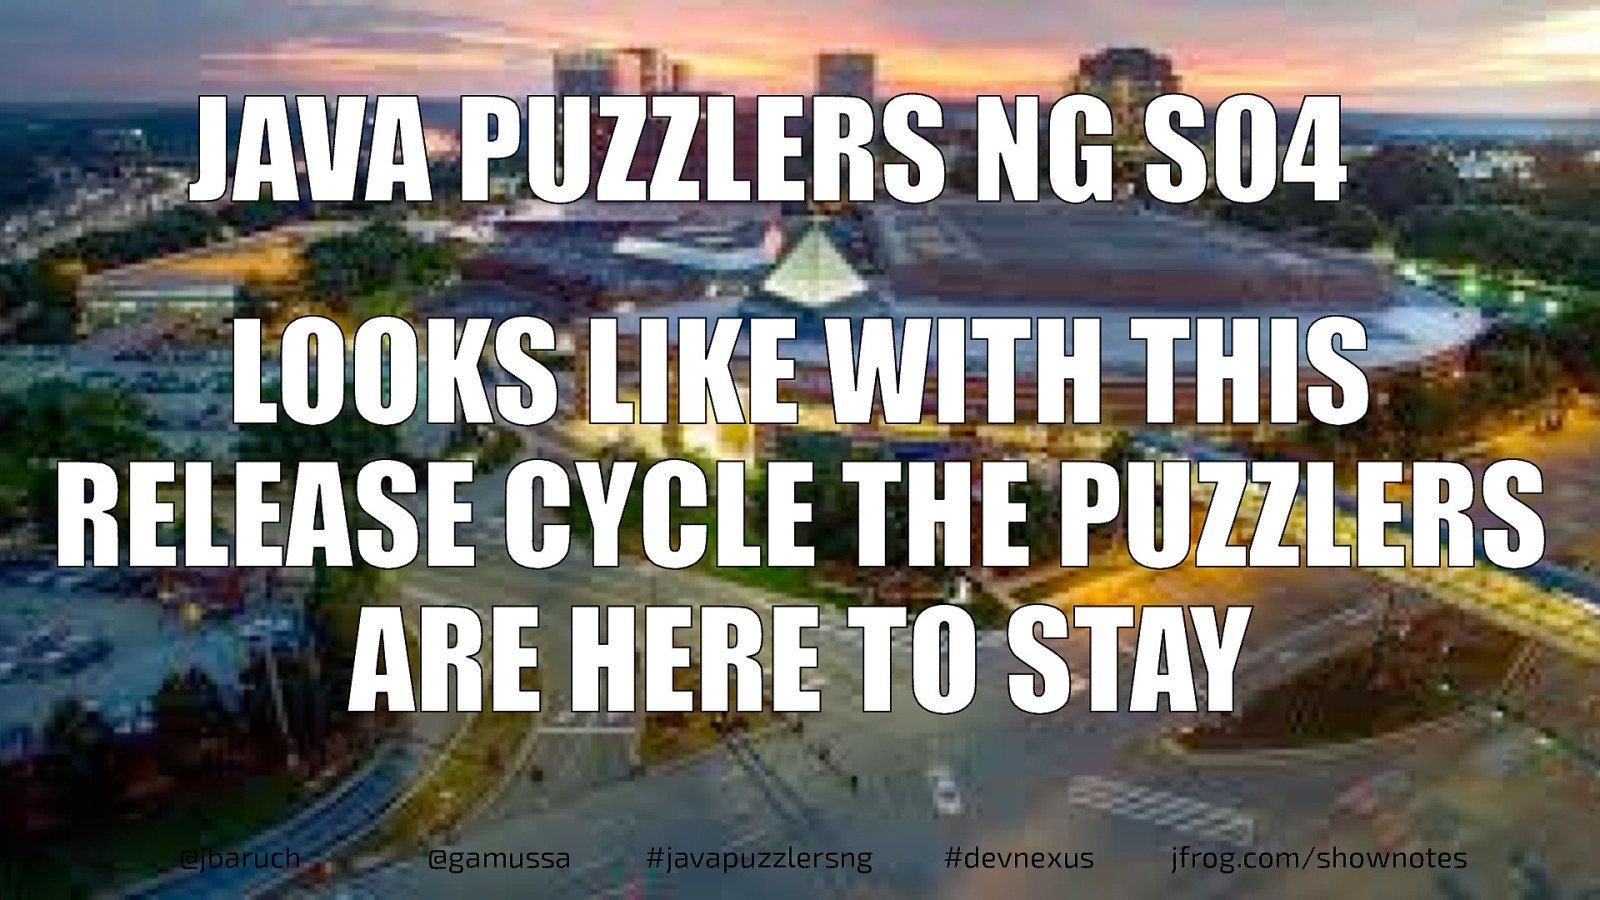 Java Puzzlers NG S04 - Looks like with this release cycle the puzzlers are here to stay